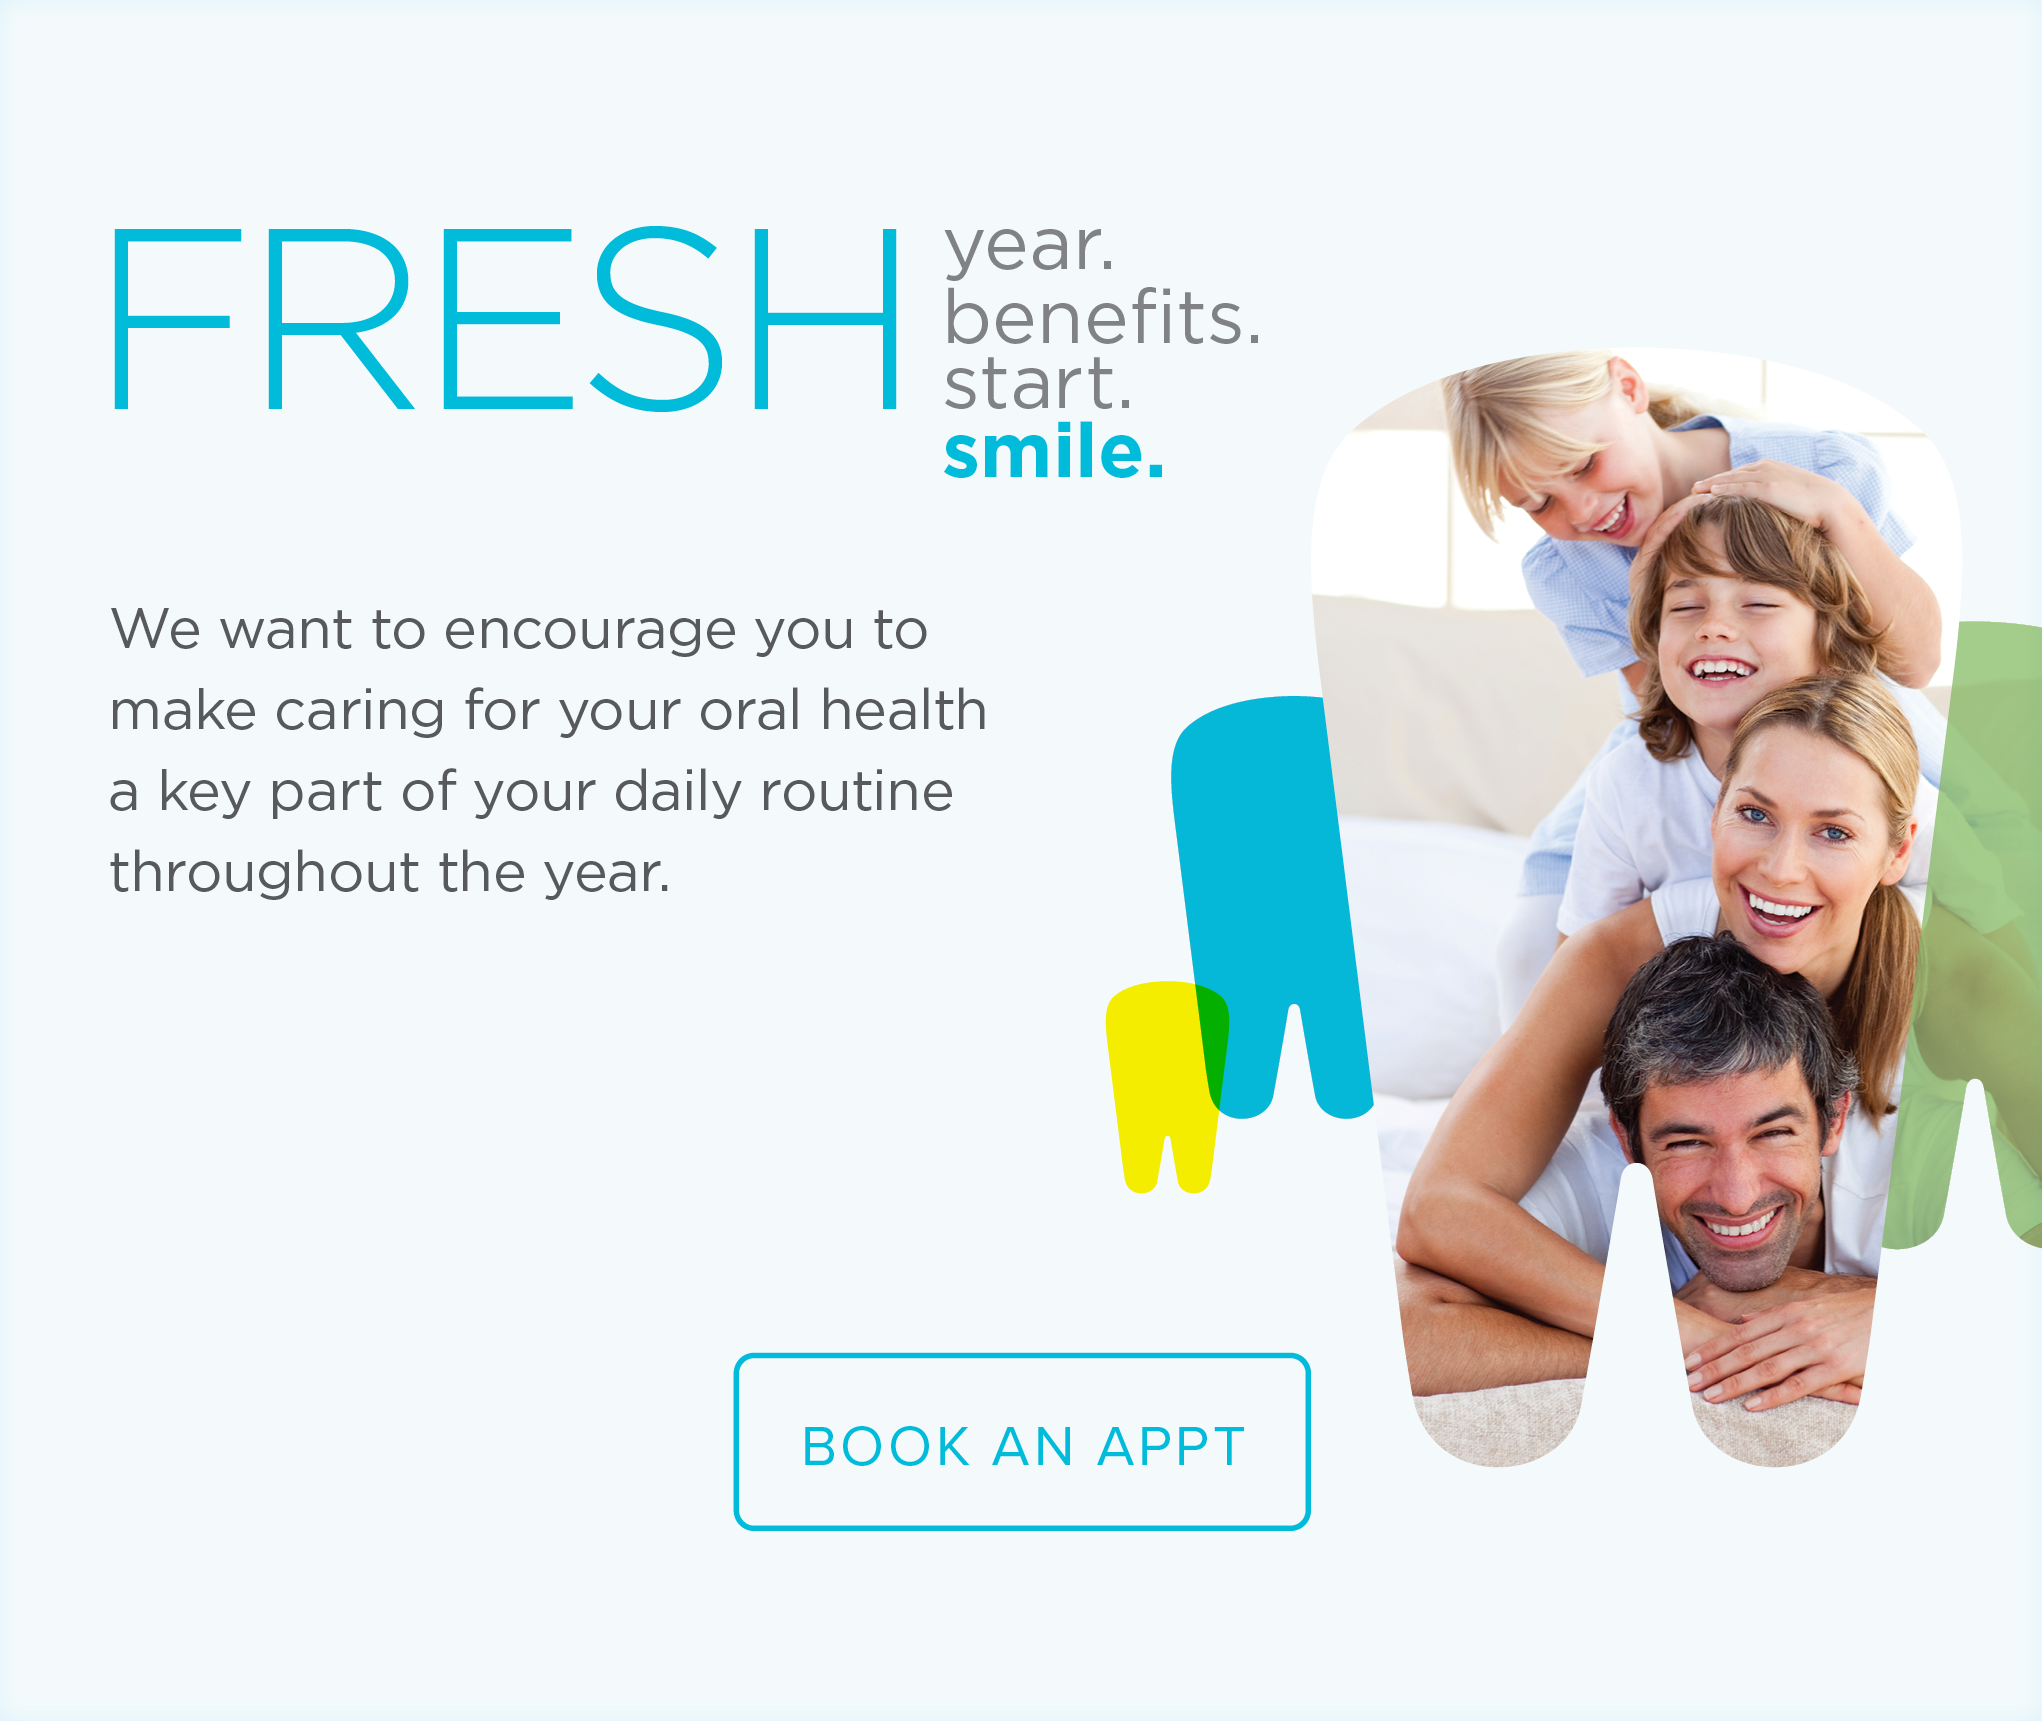 Crestline Dental Group and Orthodontics - Make the Most of Your Benefits